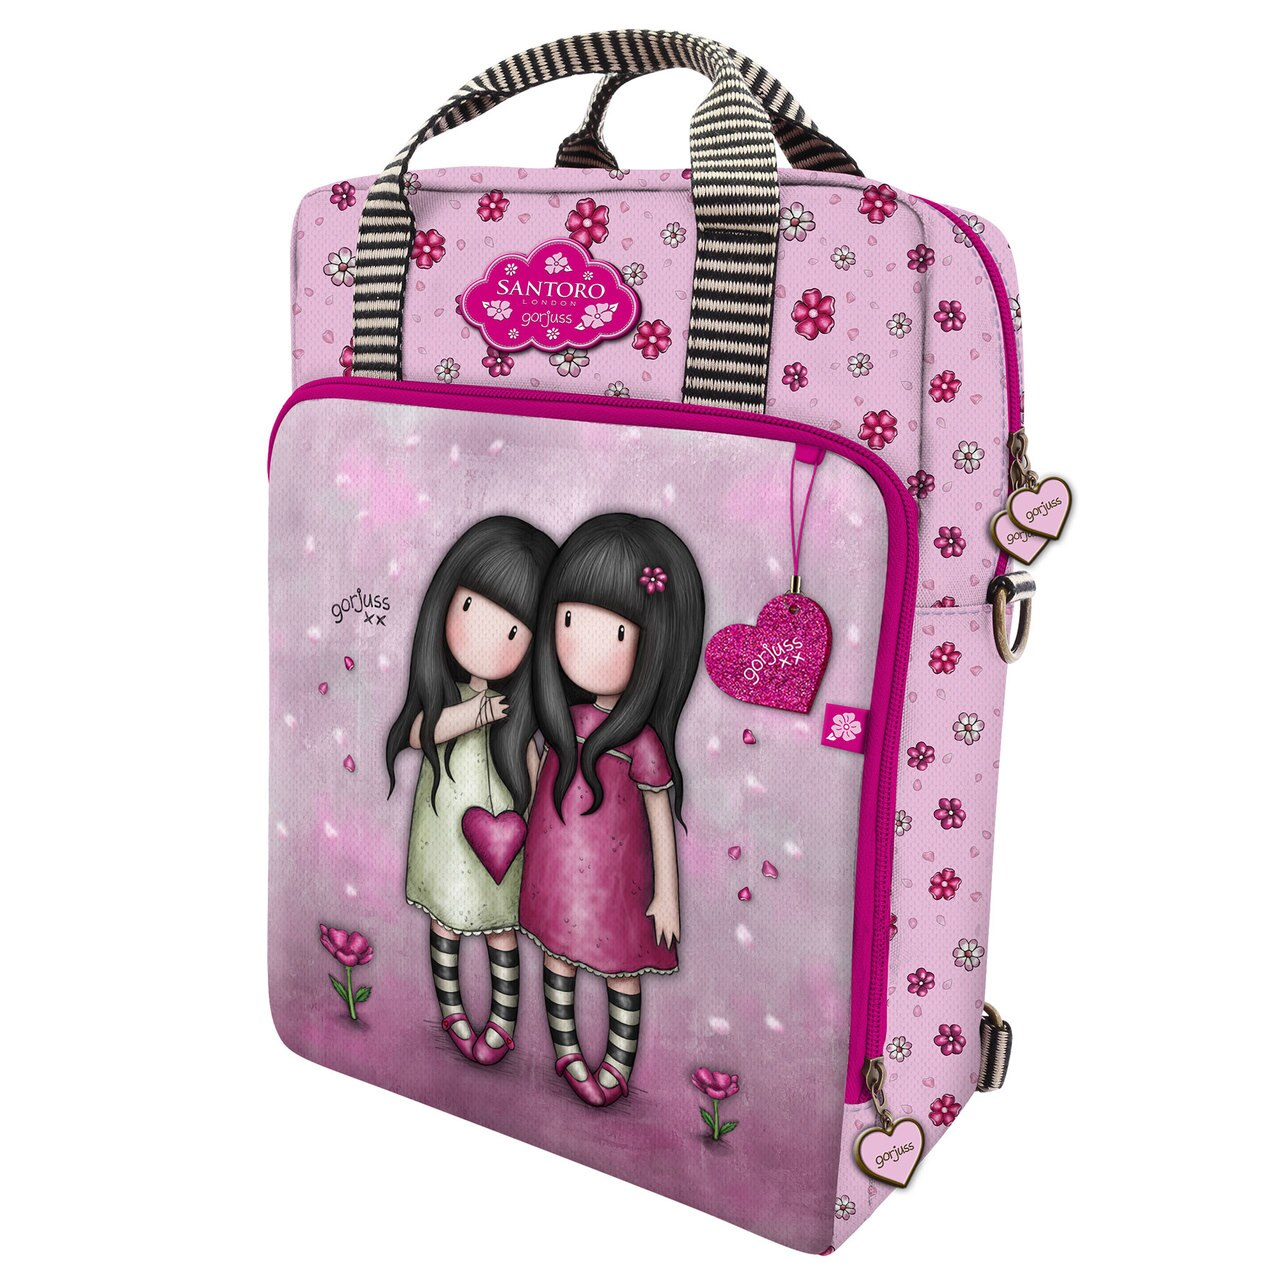 Santoro pink 2in1 backpack Gorjuss You Can Have Mine